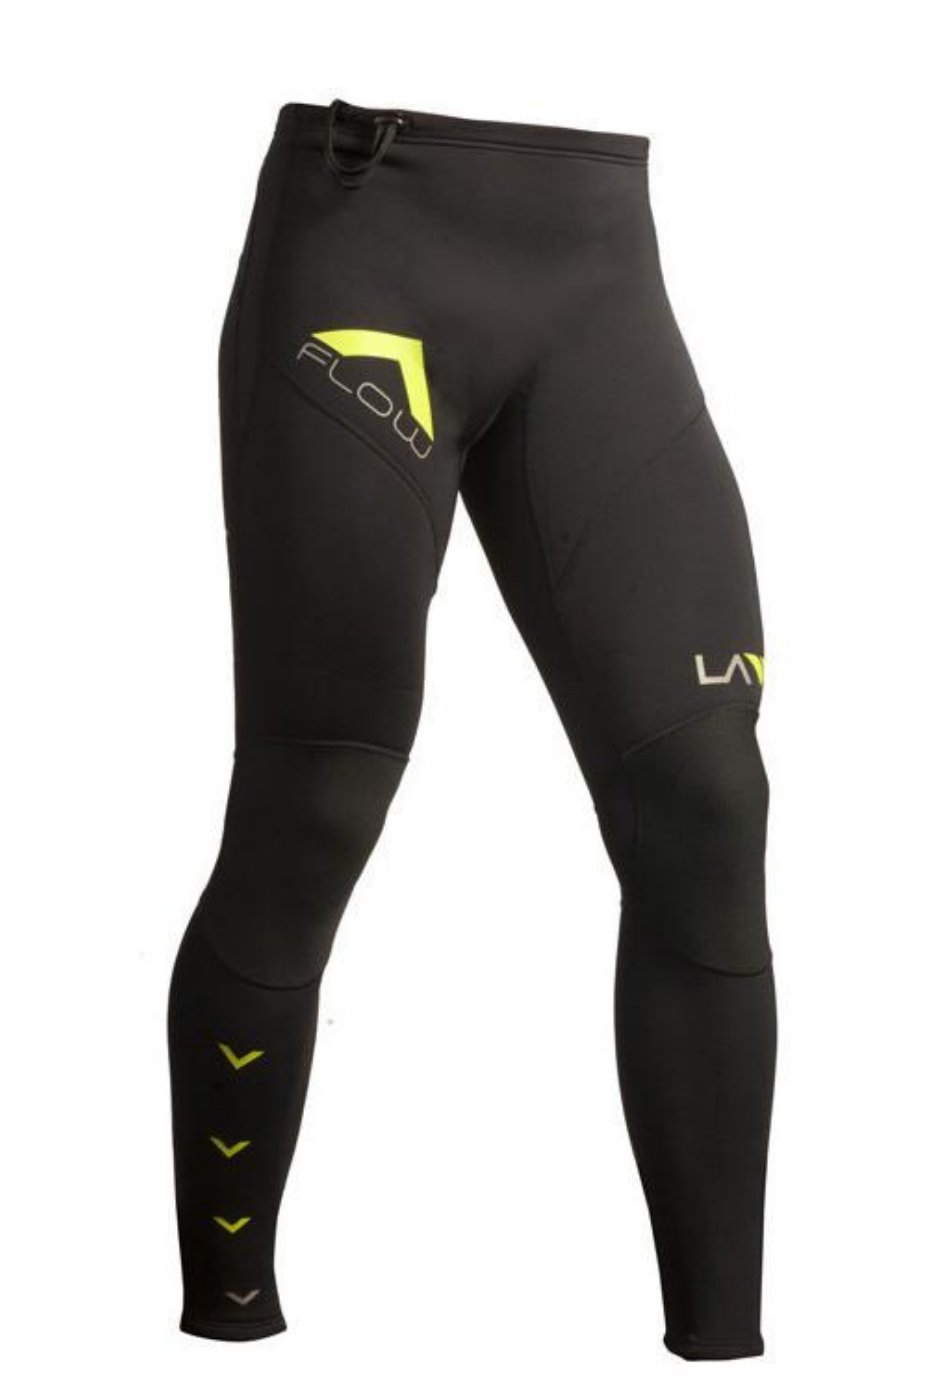 XTERRA Boards Lava Flow Paddle Boarding Wetsuit Pants (Medium) by XTERRA Boards (Image #1)